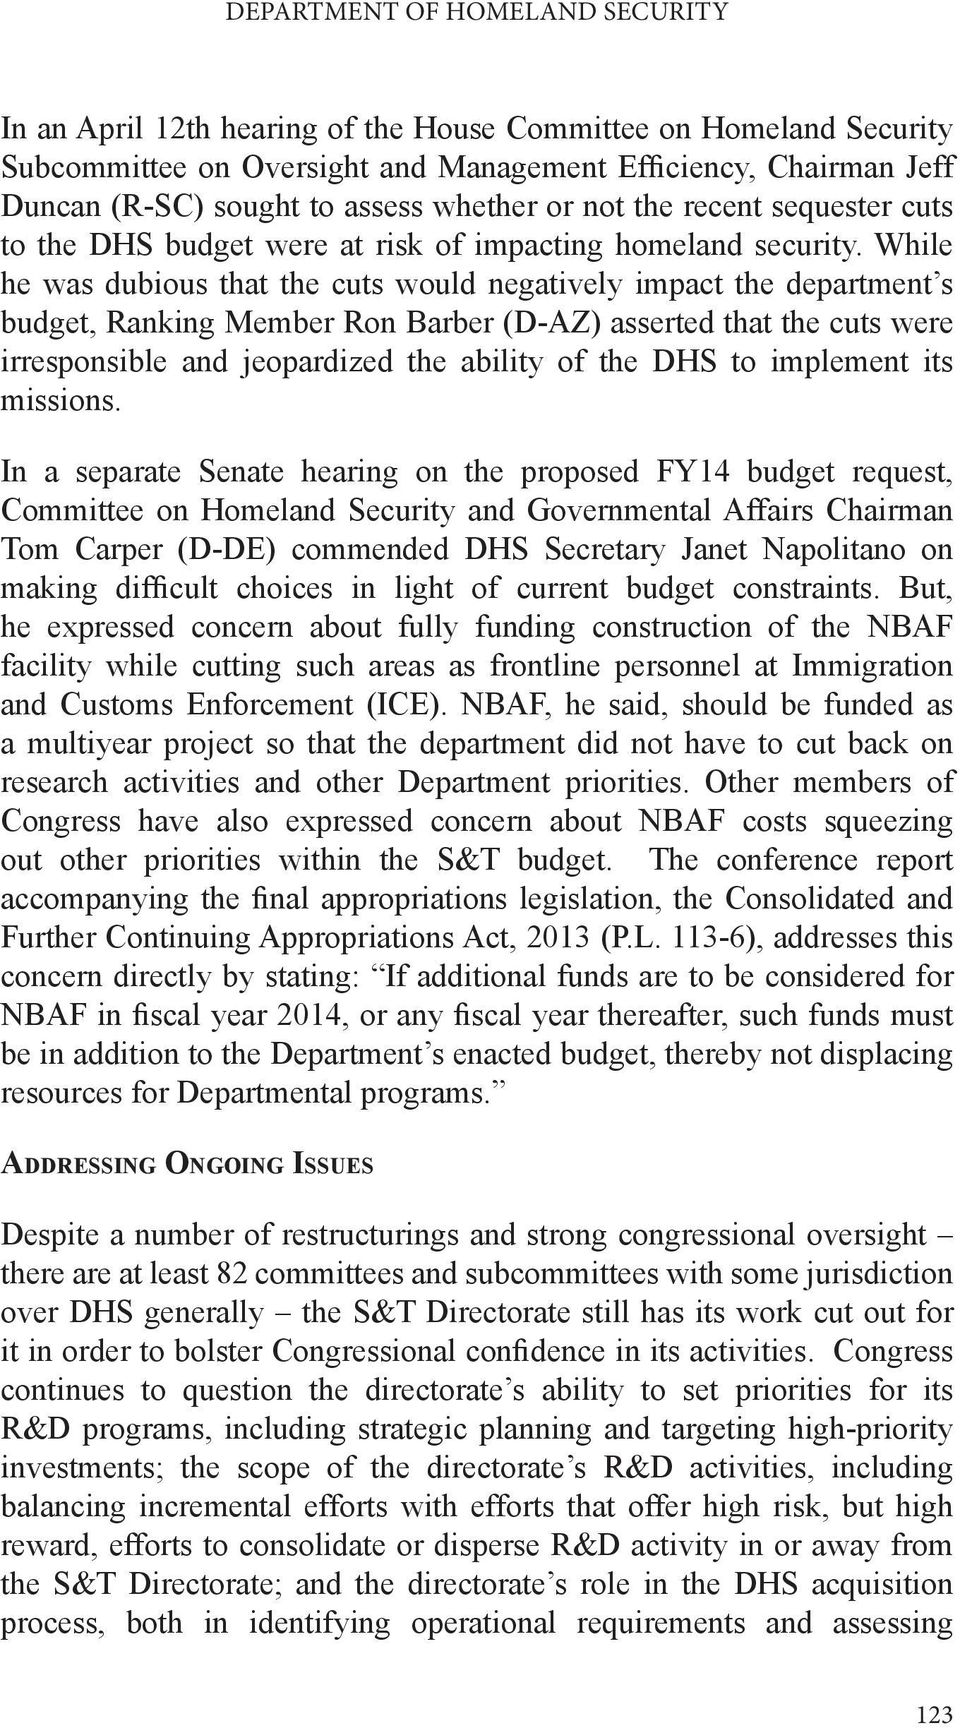 While he was dubious that the cuts would negatively impact the department s budget, Ranking Member Ron Barber (D-AZ) asserted that the cuts were irresponsible and jeopardized the ability of the DHS